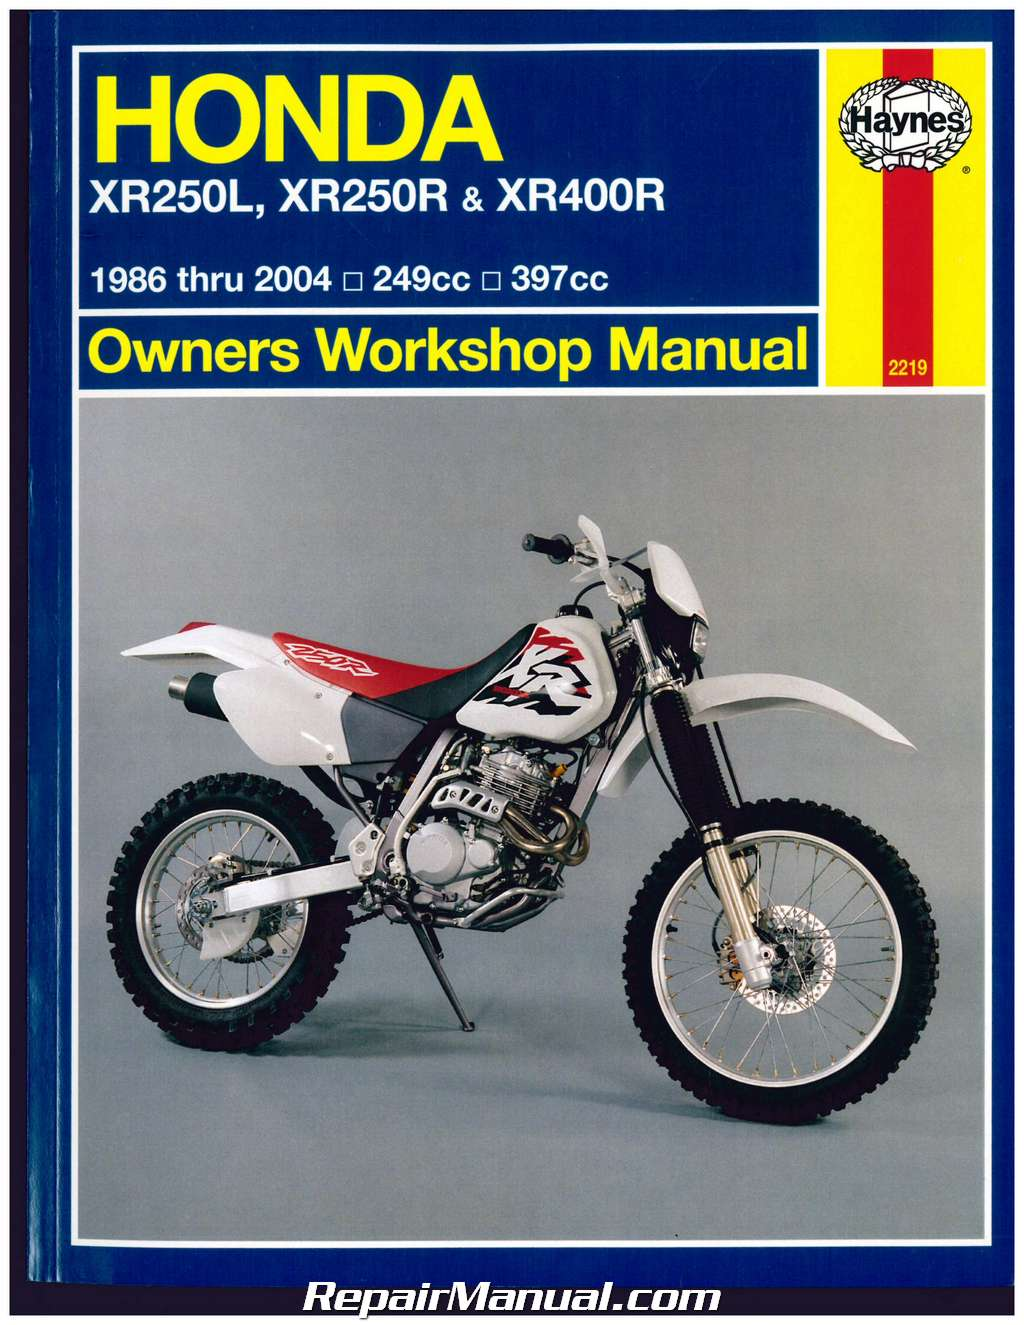 honda xr250l xr250r xr 400r 1986 2004 haynes repair manual rh repairmanual com manual honda xr250r honda xr250r manual free download